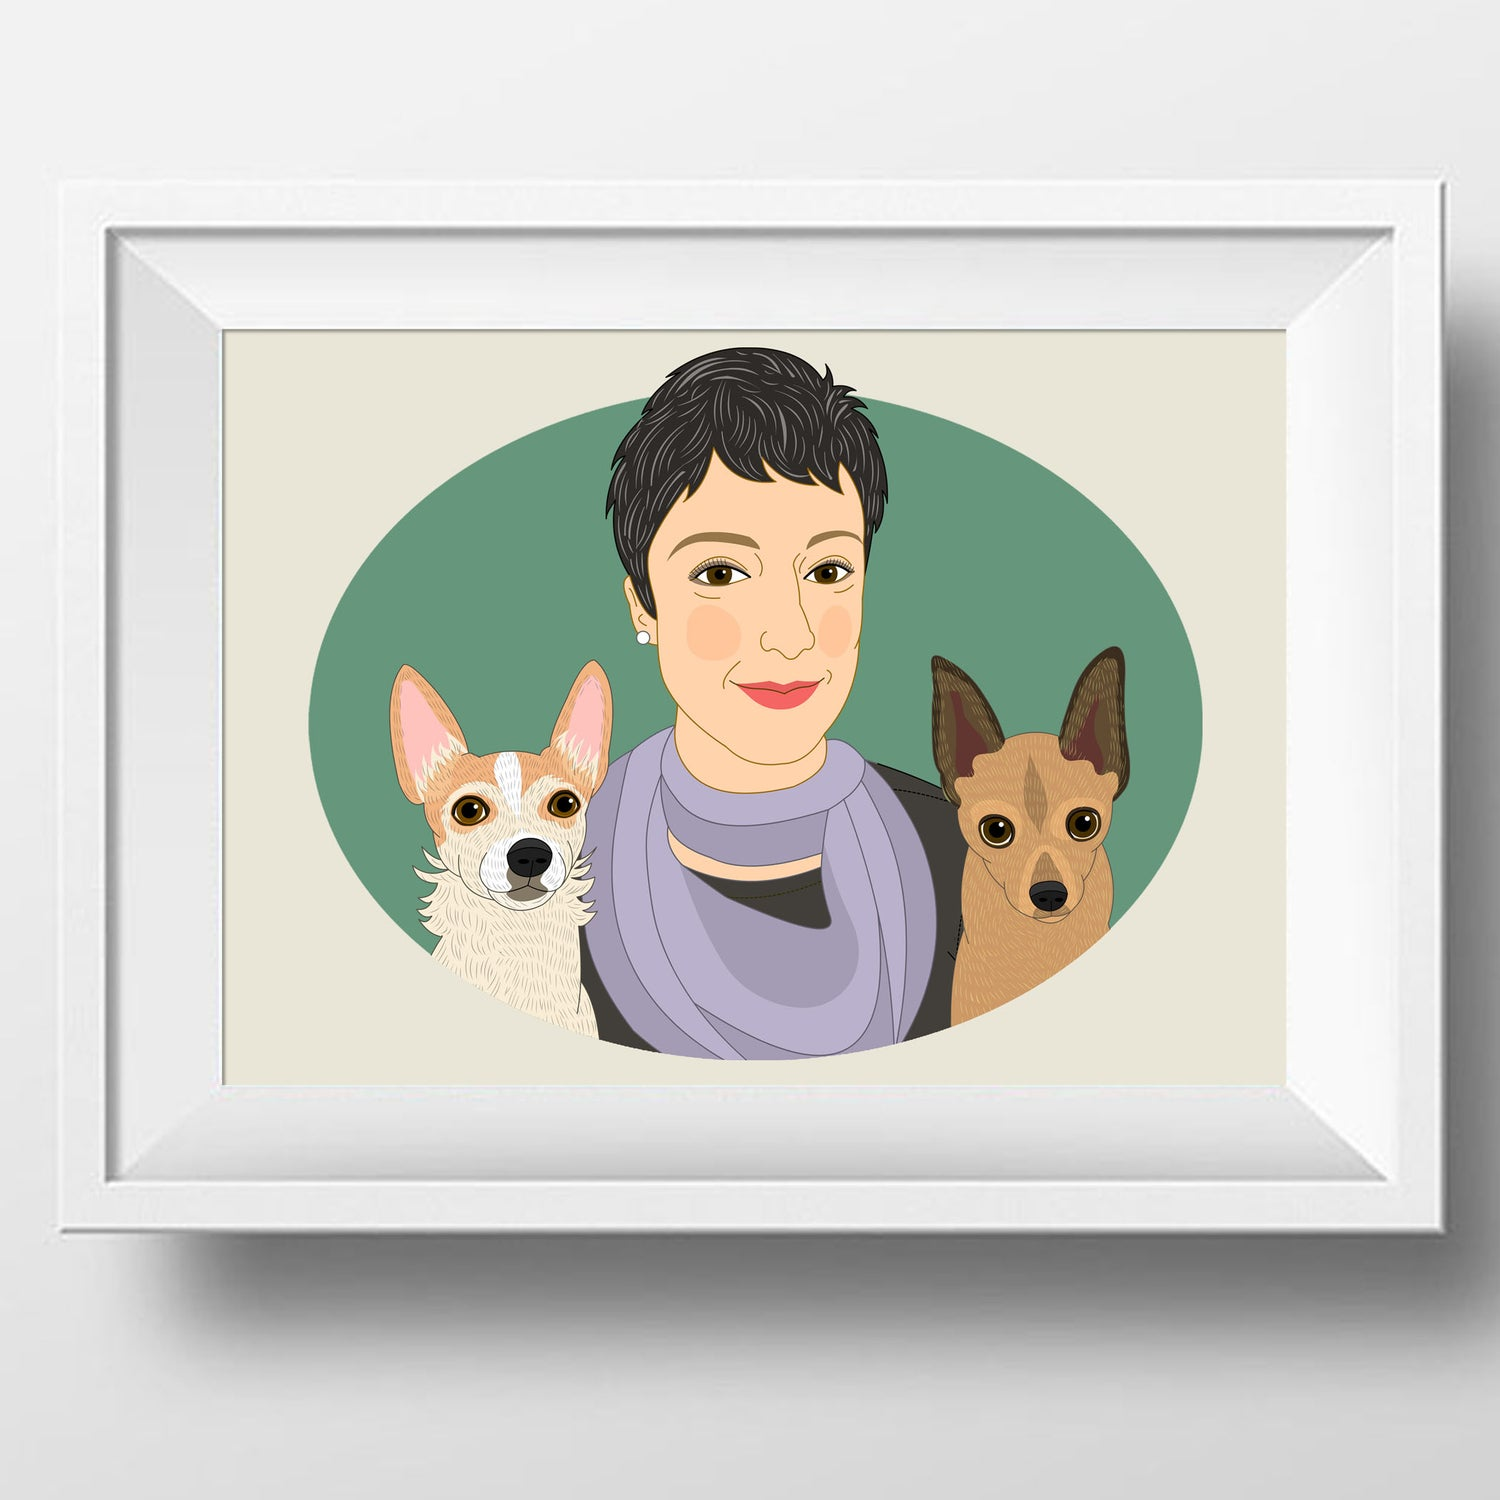 Image of Custom Portrait from photo. Portrait with 2 pets, personalized illustration with dogs or cats.